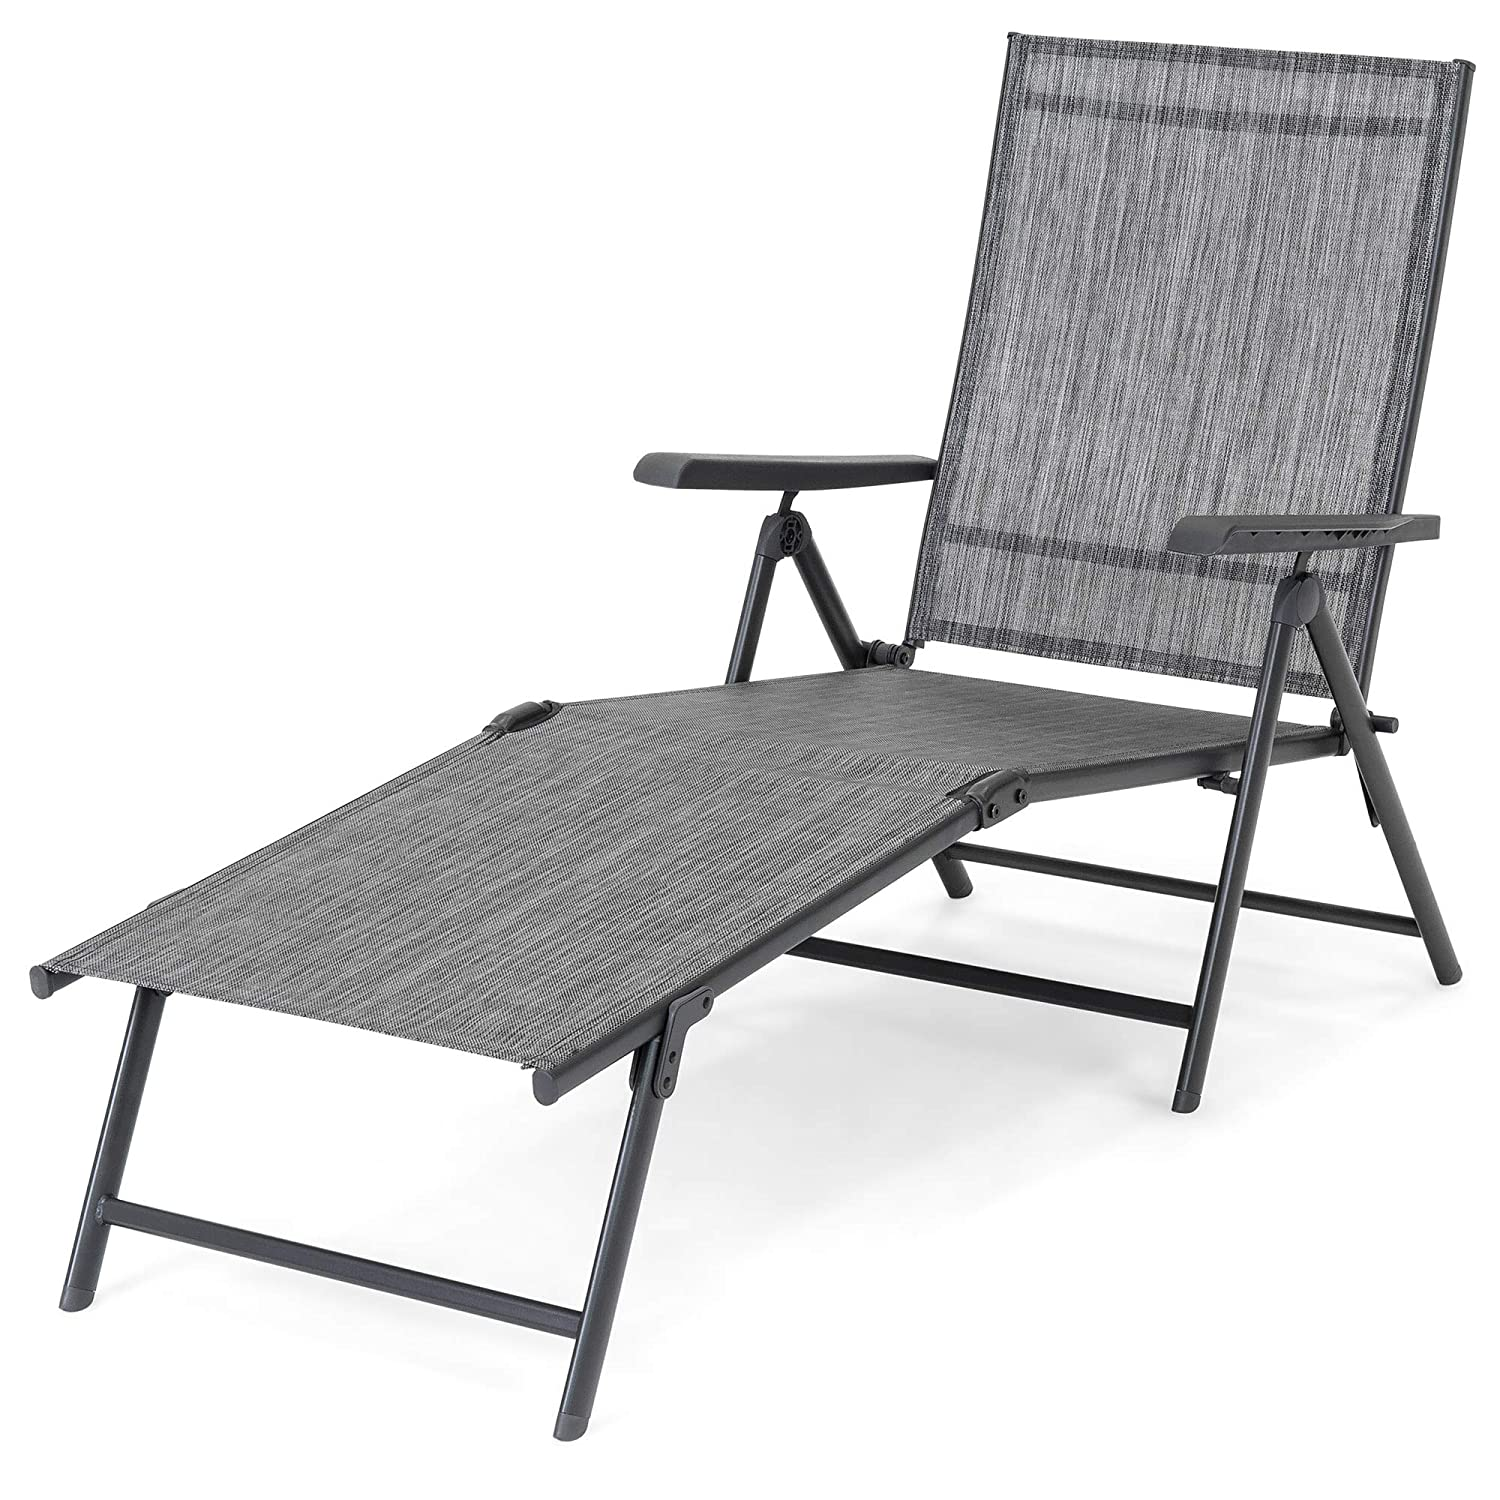 UV-Resistant Textilene Best Choice Products Set of 2 Outdoor Adjustable Folding Chaise Reclining Lounge Chairs for Patio Poolside 4 Back /& 2 Leg Positions Deck w//Rust-Resistant Steel Frame